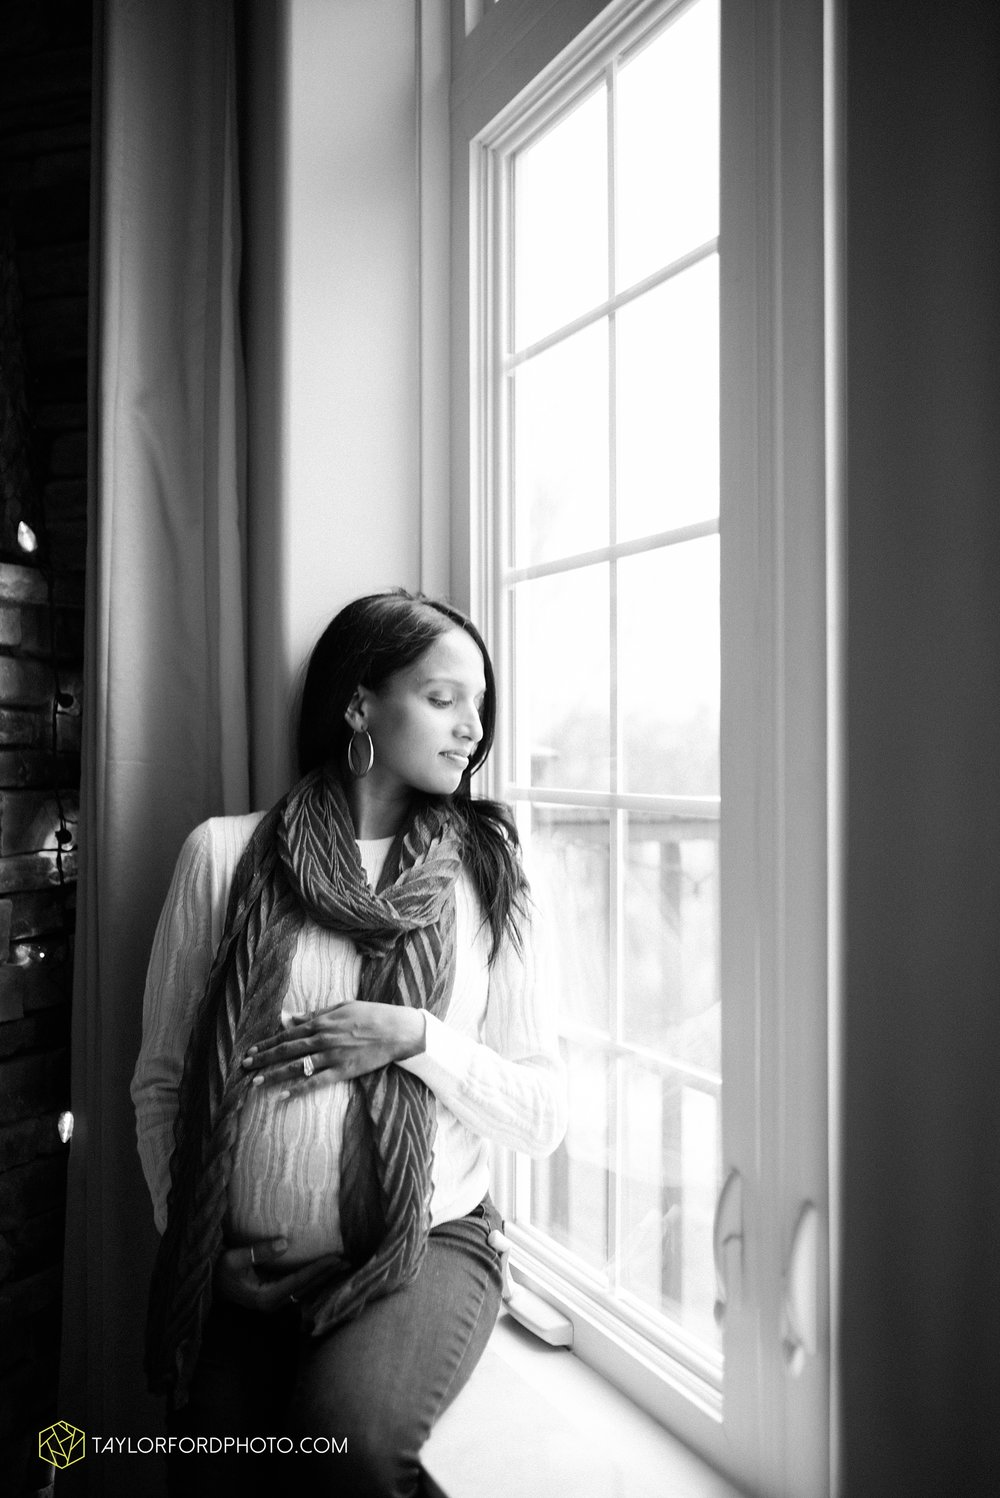 brentwood_nashville_tennessee_maternity_lifestyle_photographer_taylor_ford_4317.jpg